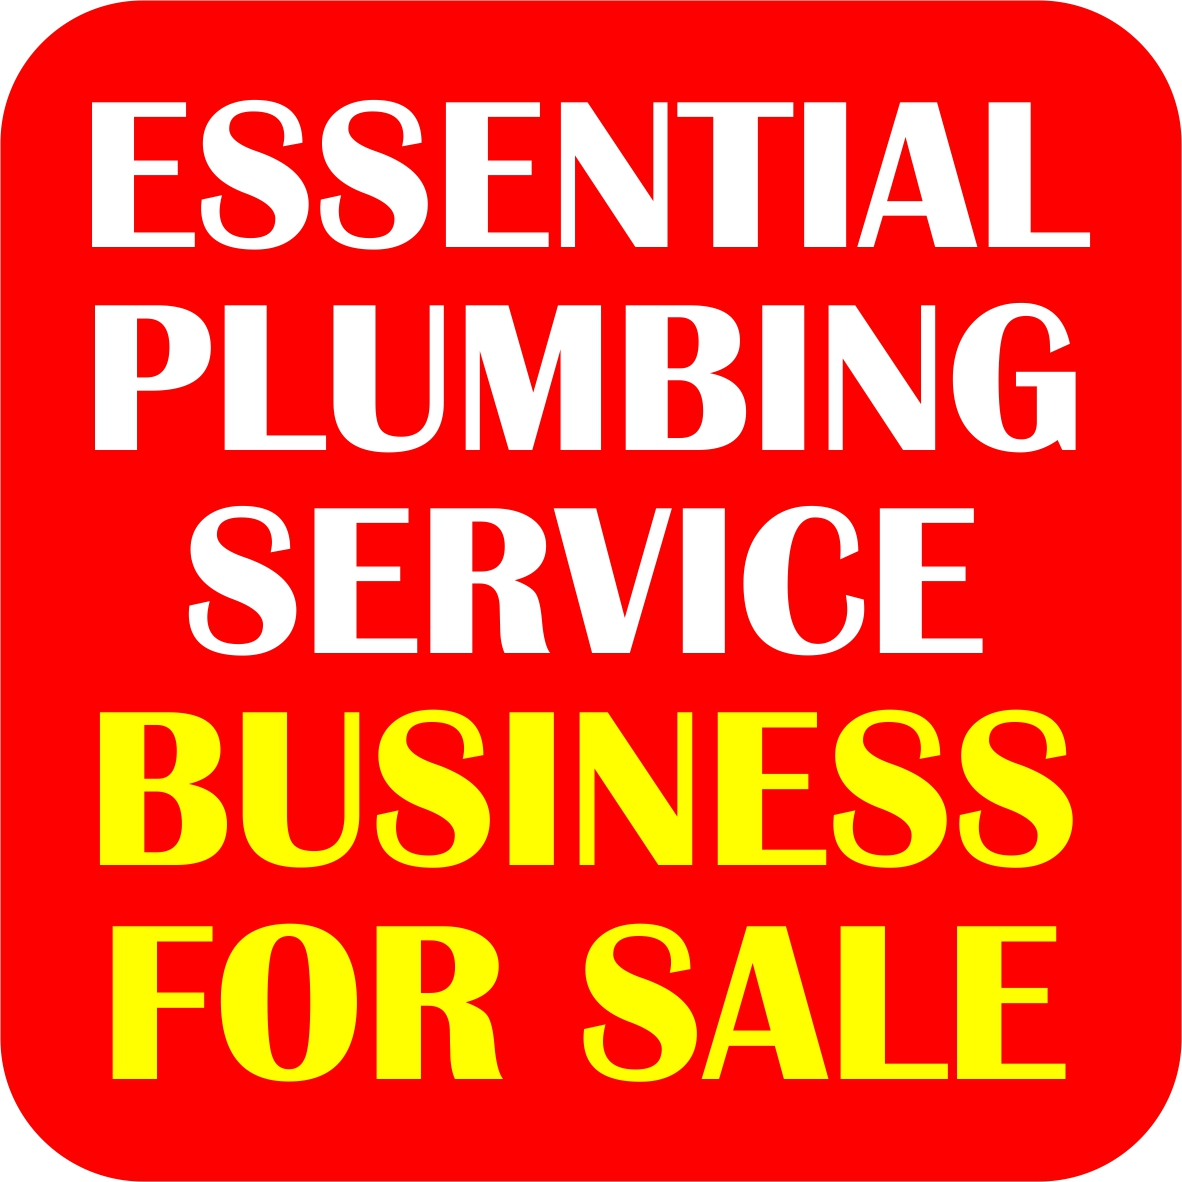 Essential plumbing service business for sale